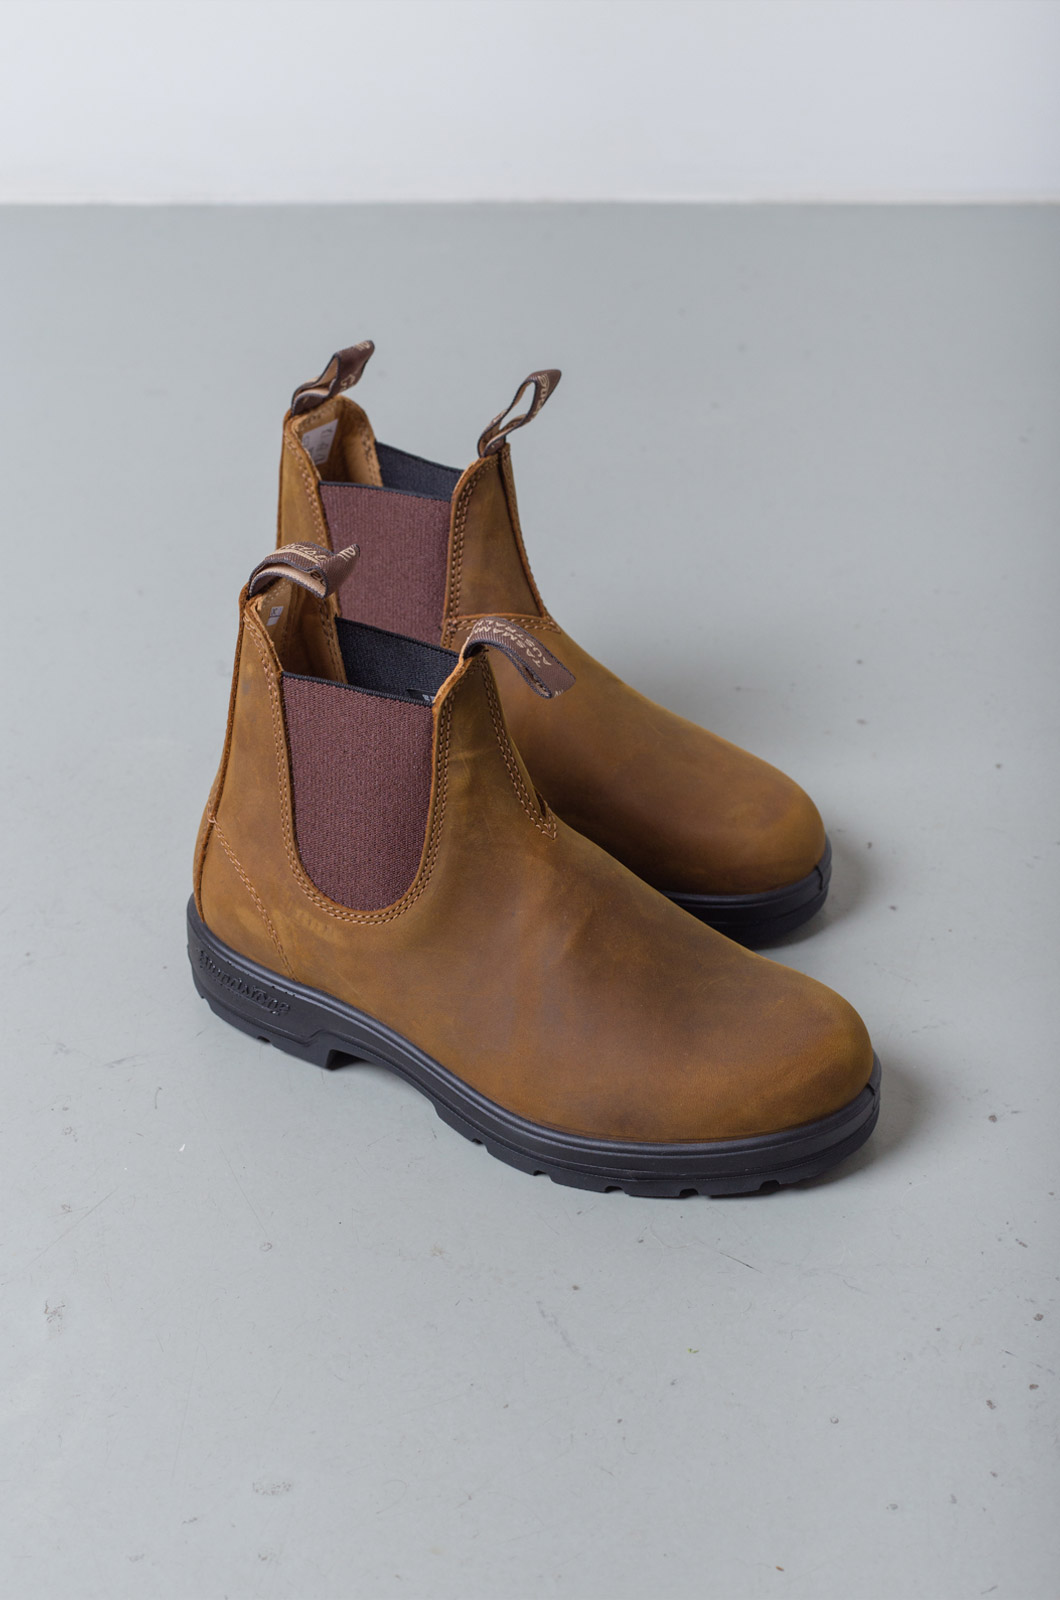 Blundstone - Classic Chelsea Boots - Crazy Horse Brown